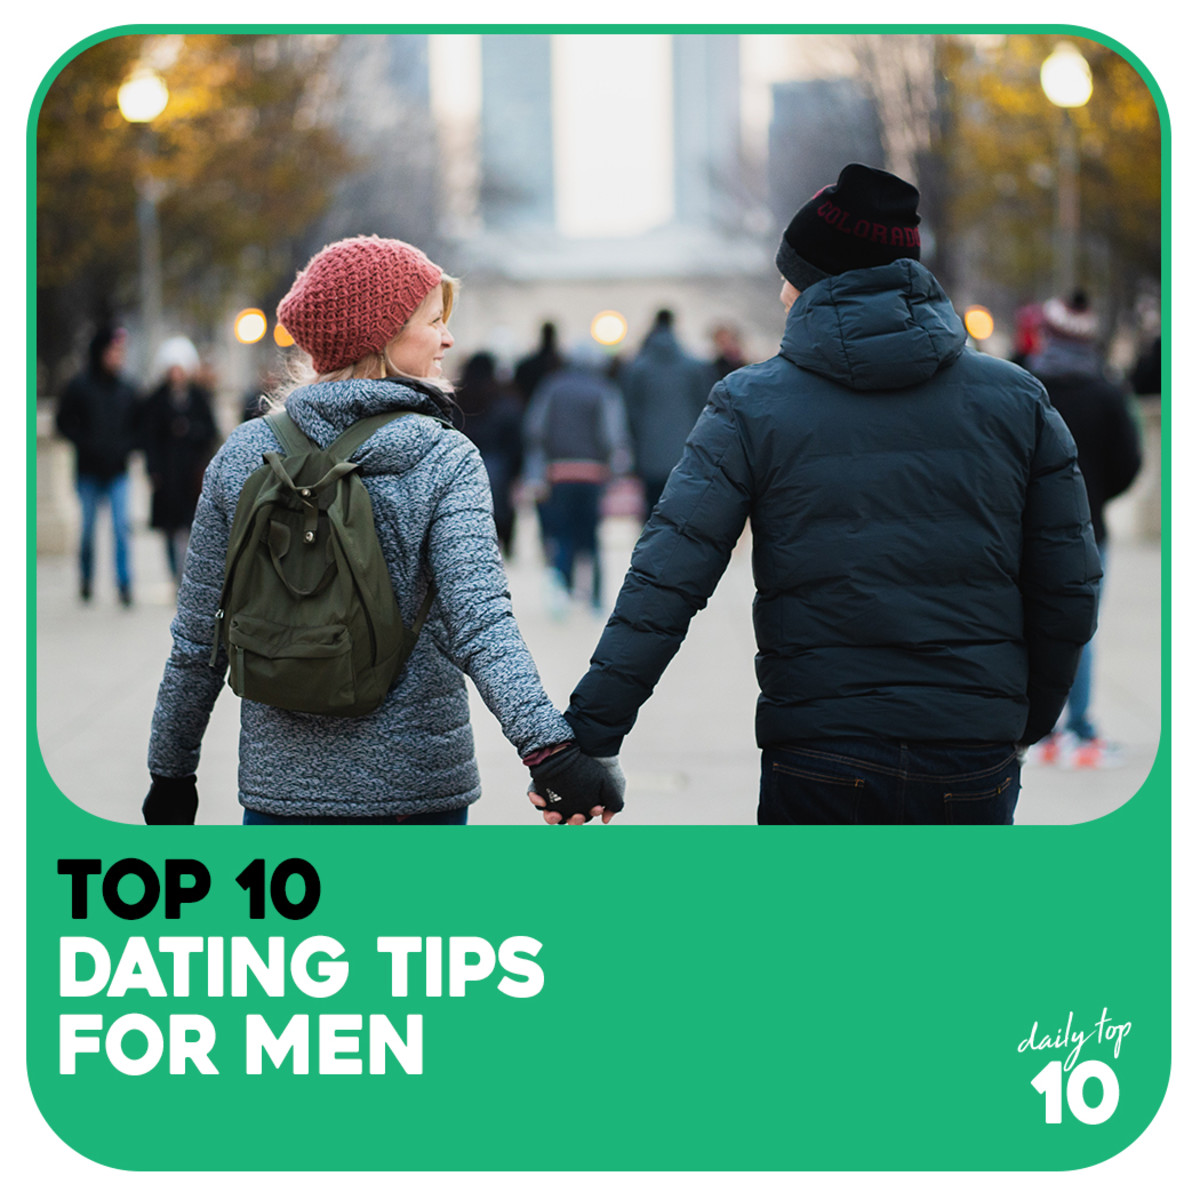 Top 10 Best Dating Tips for Shy Guys, Skinny Guys, Any Man Who Wants to Wing a Girl's Heart